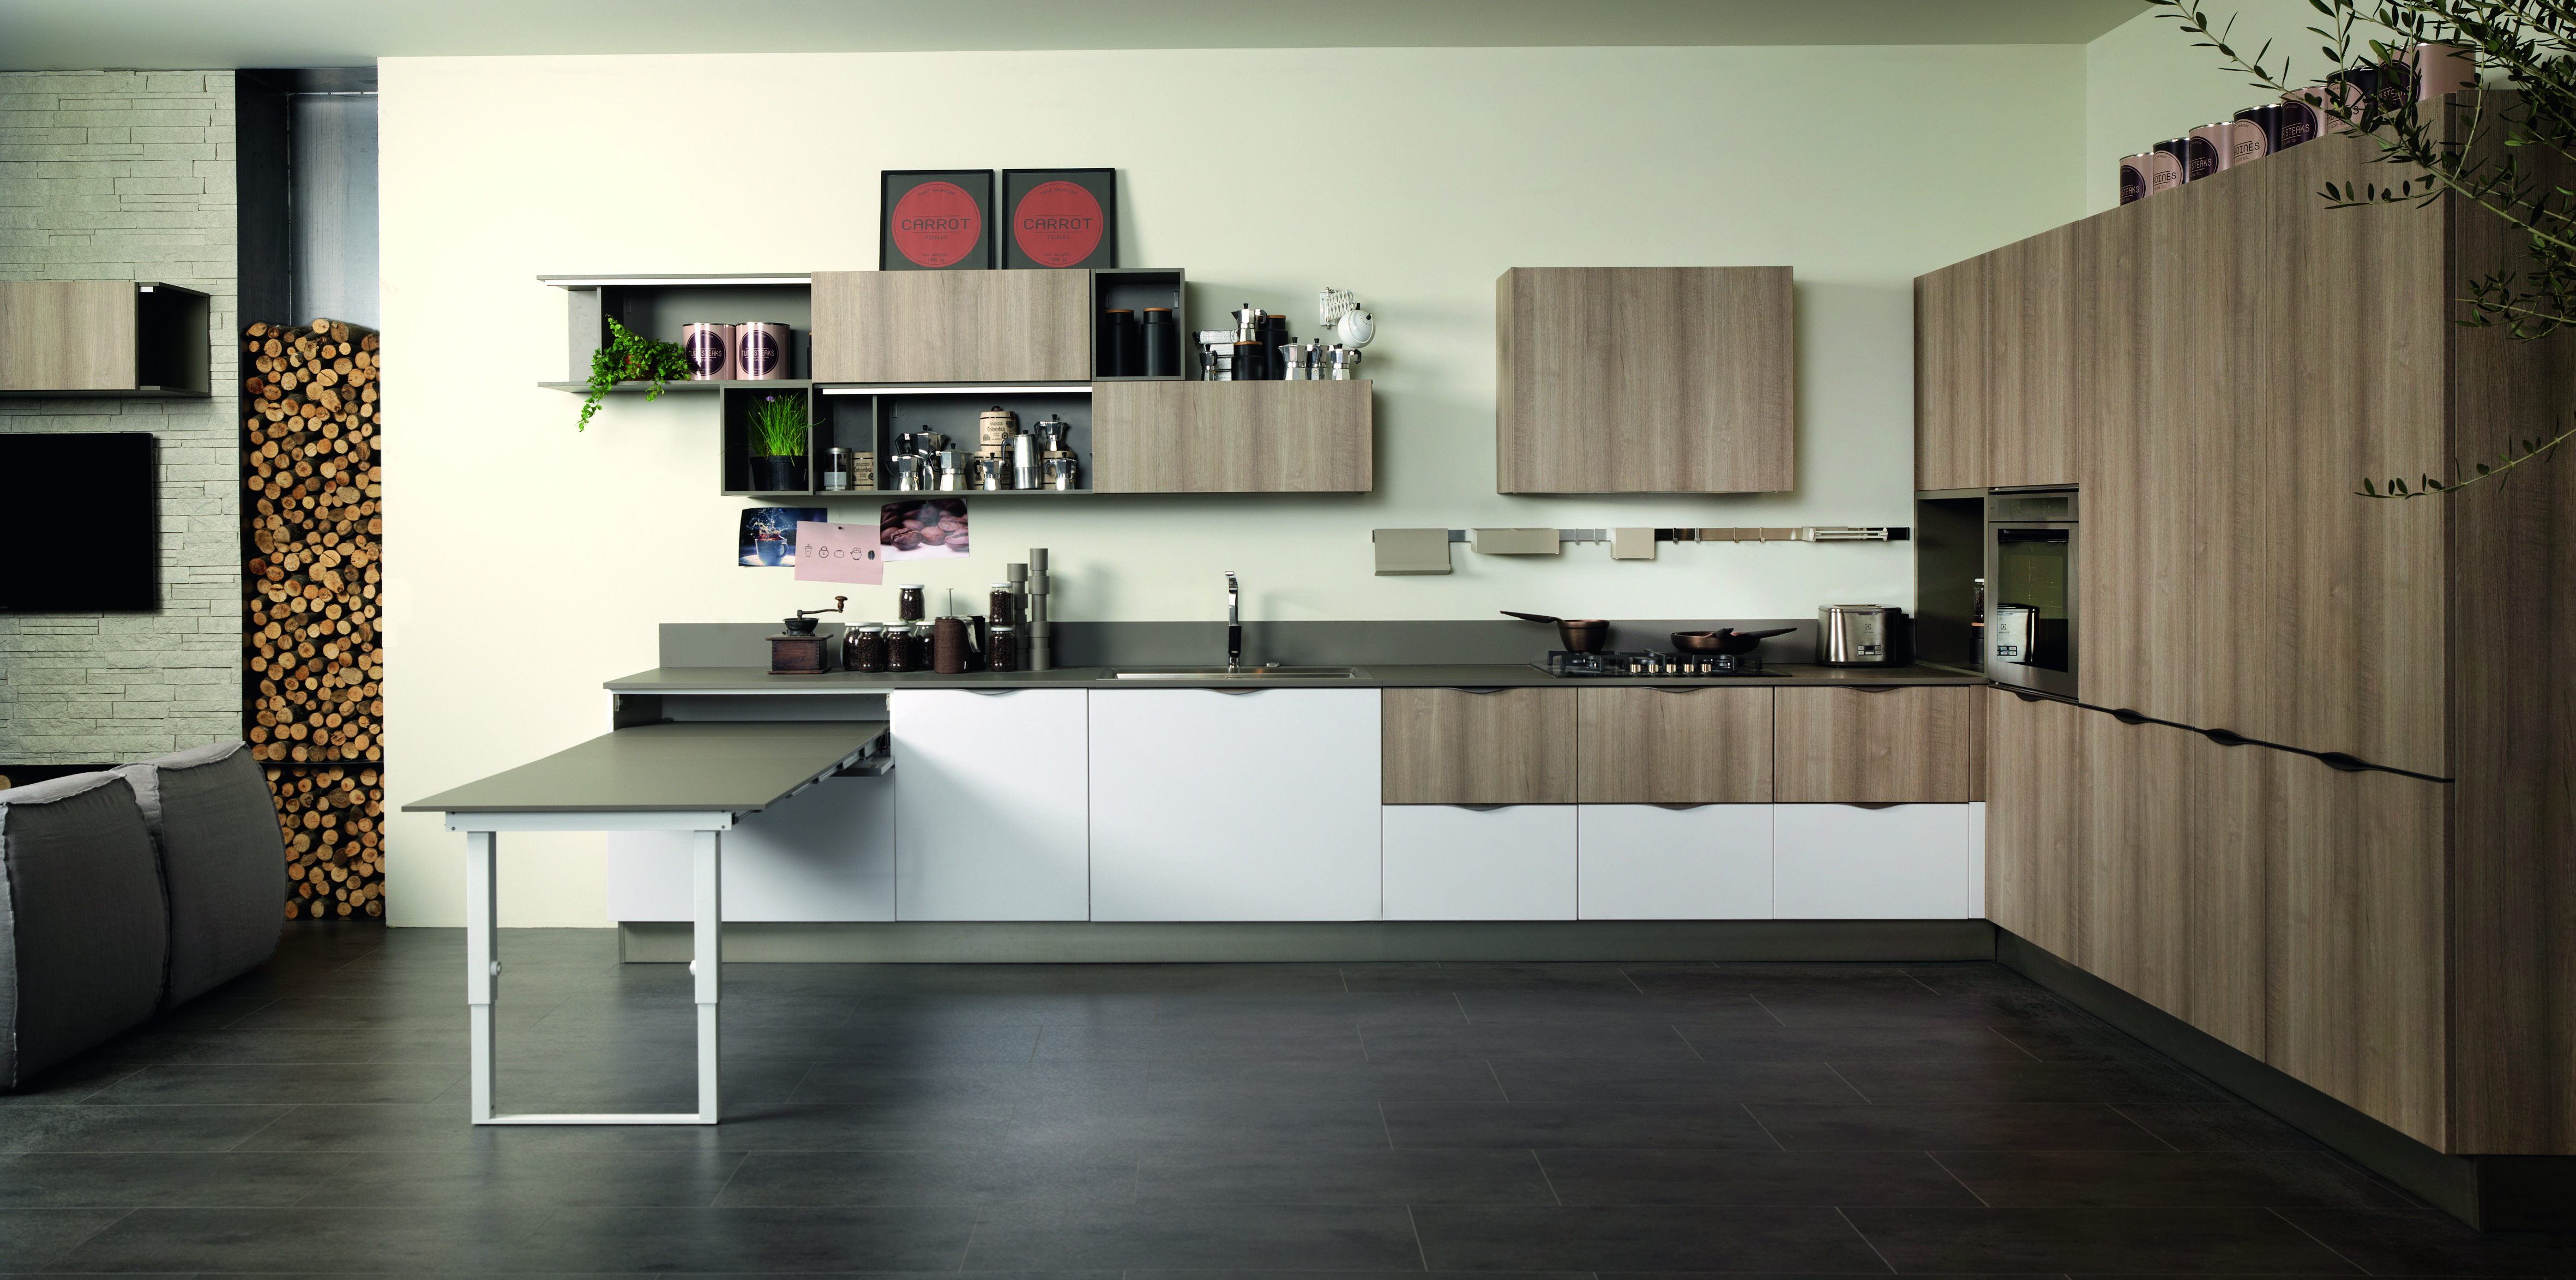 Stunning Cucina Tavolo Estraibile Pictures - Skilifts.us - skilifts.us